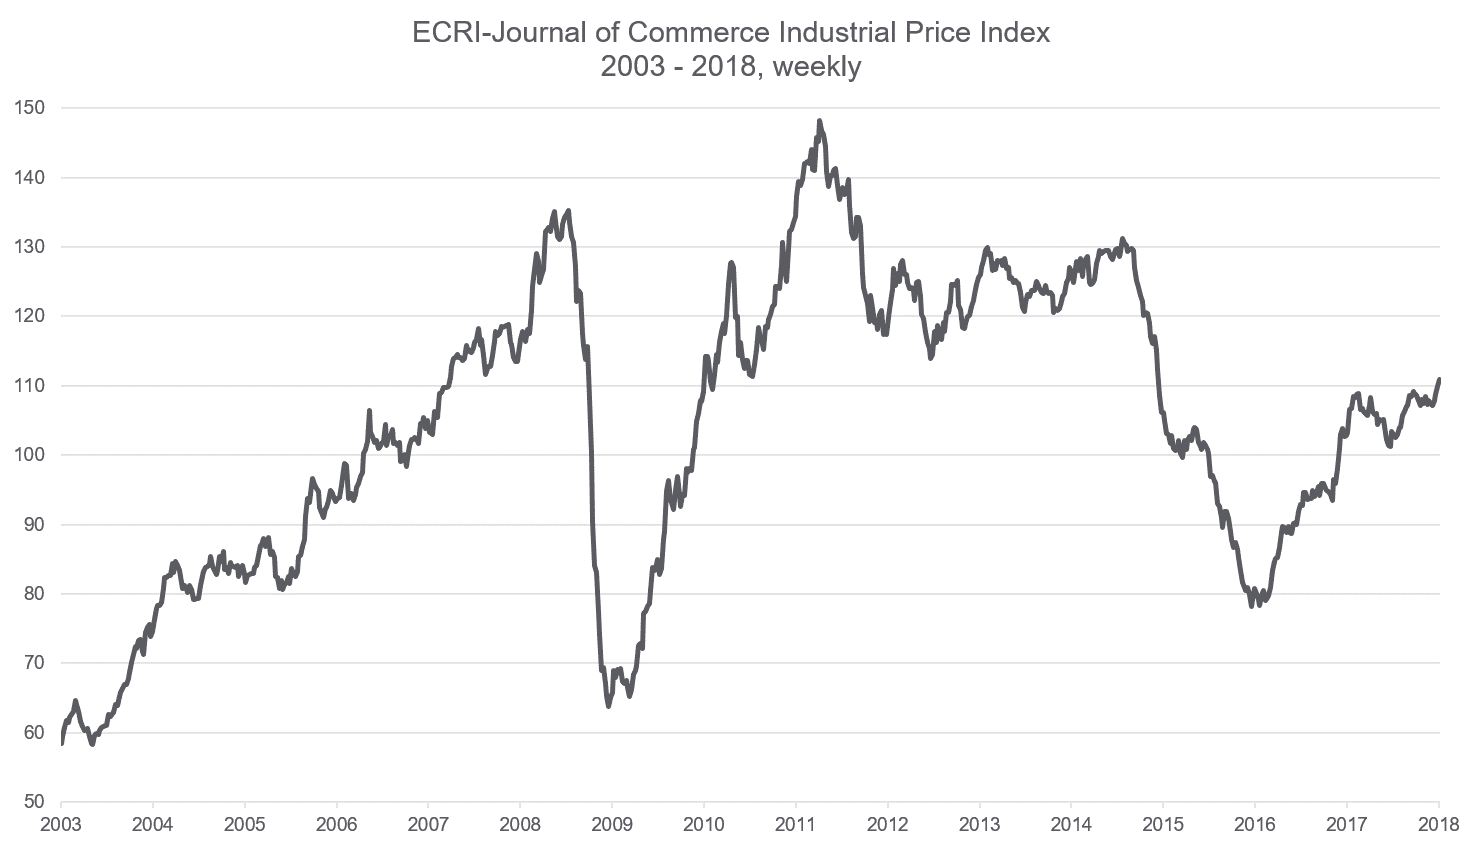 ECRI-Journal of Commerce Industrial Price Index